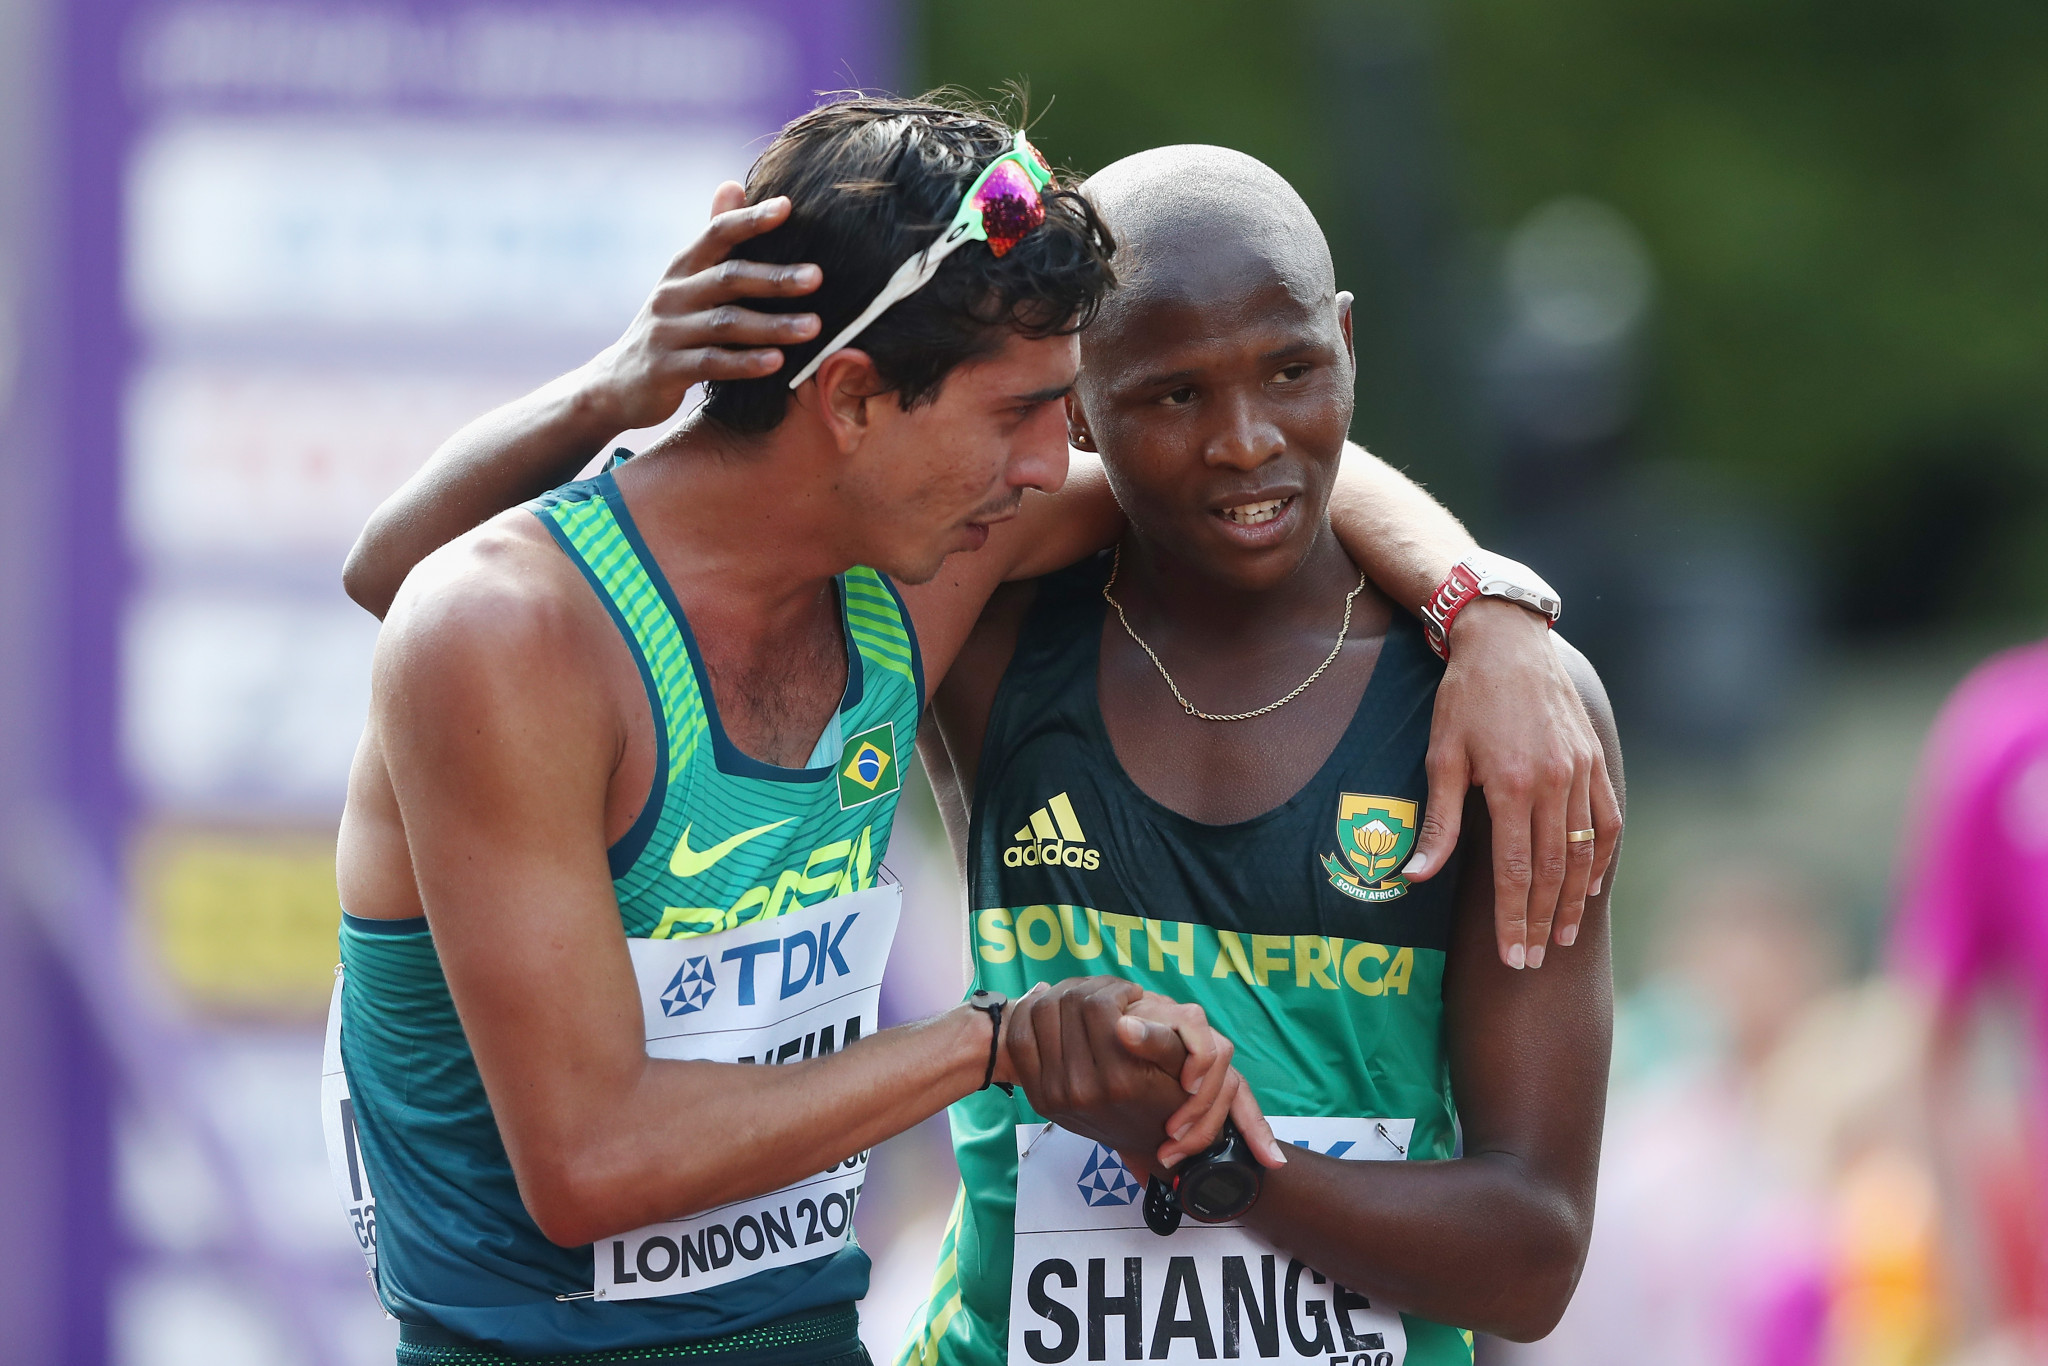 Lebogang Shange is consoled after he narrowly missed a medal at the 2017 IAAF World Championships in London, finishing fourth in the 20km race walk ©Getty Images